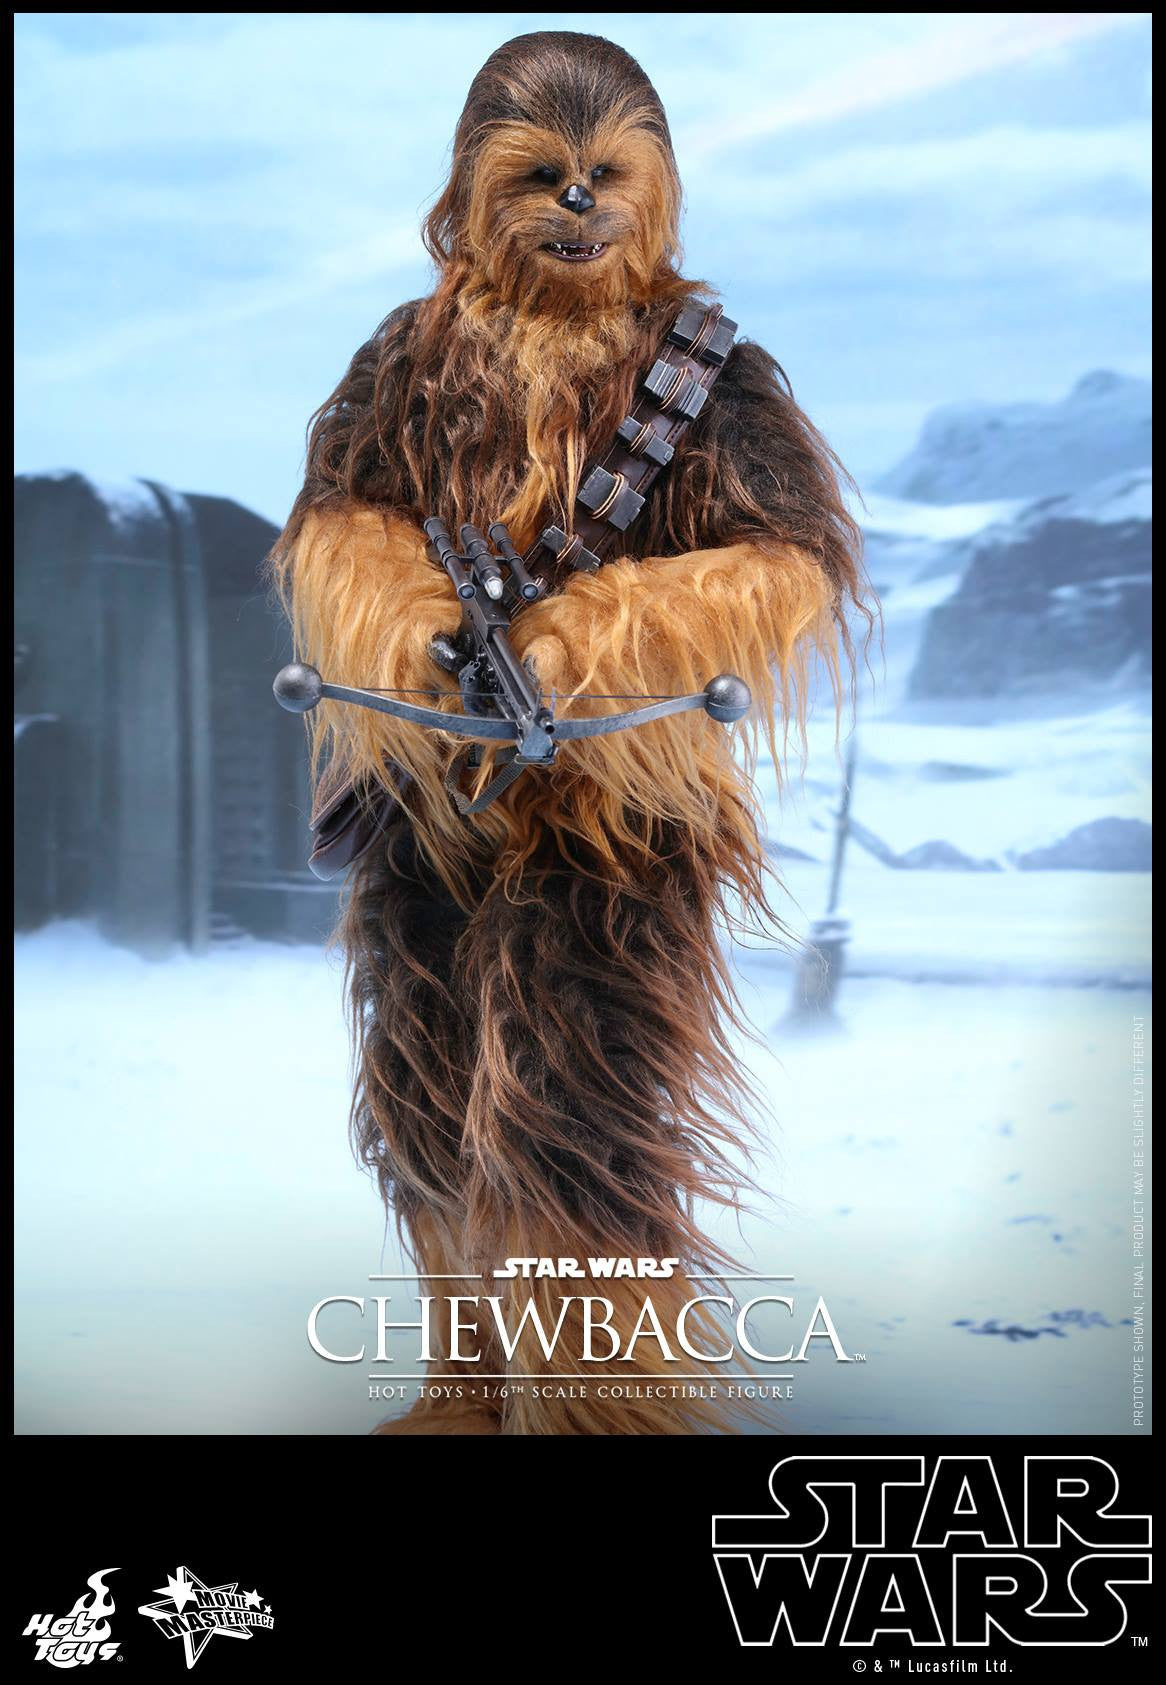 Hot Toys - MMS375 - Star Wars: The Force Awakens - Chewbacca - Marvelous Toys - 2